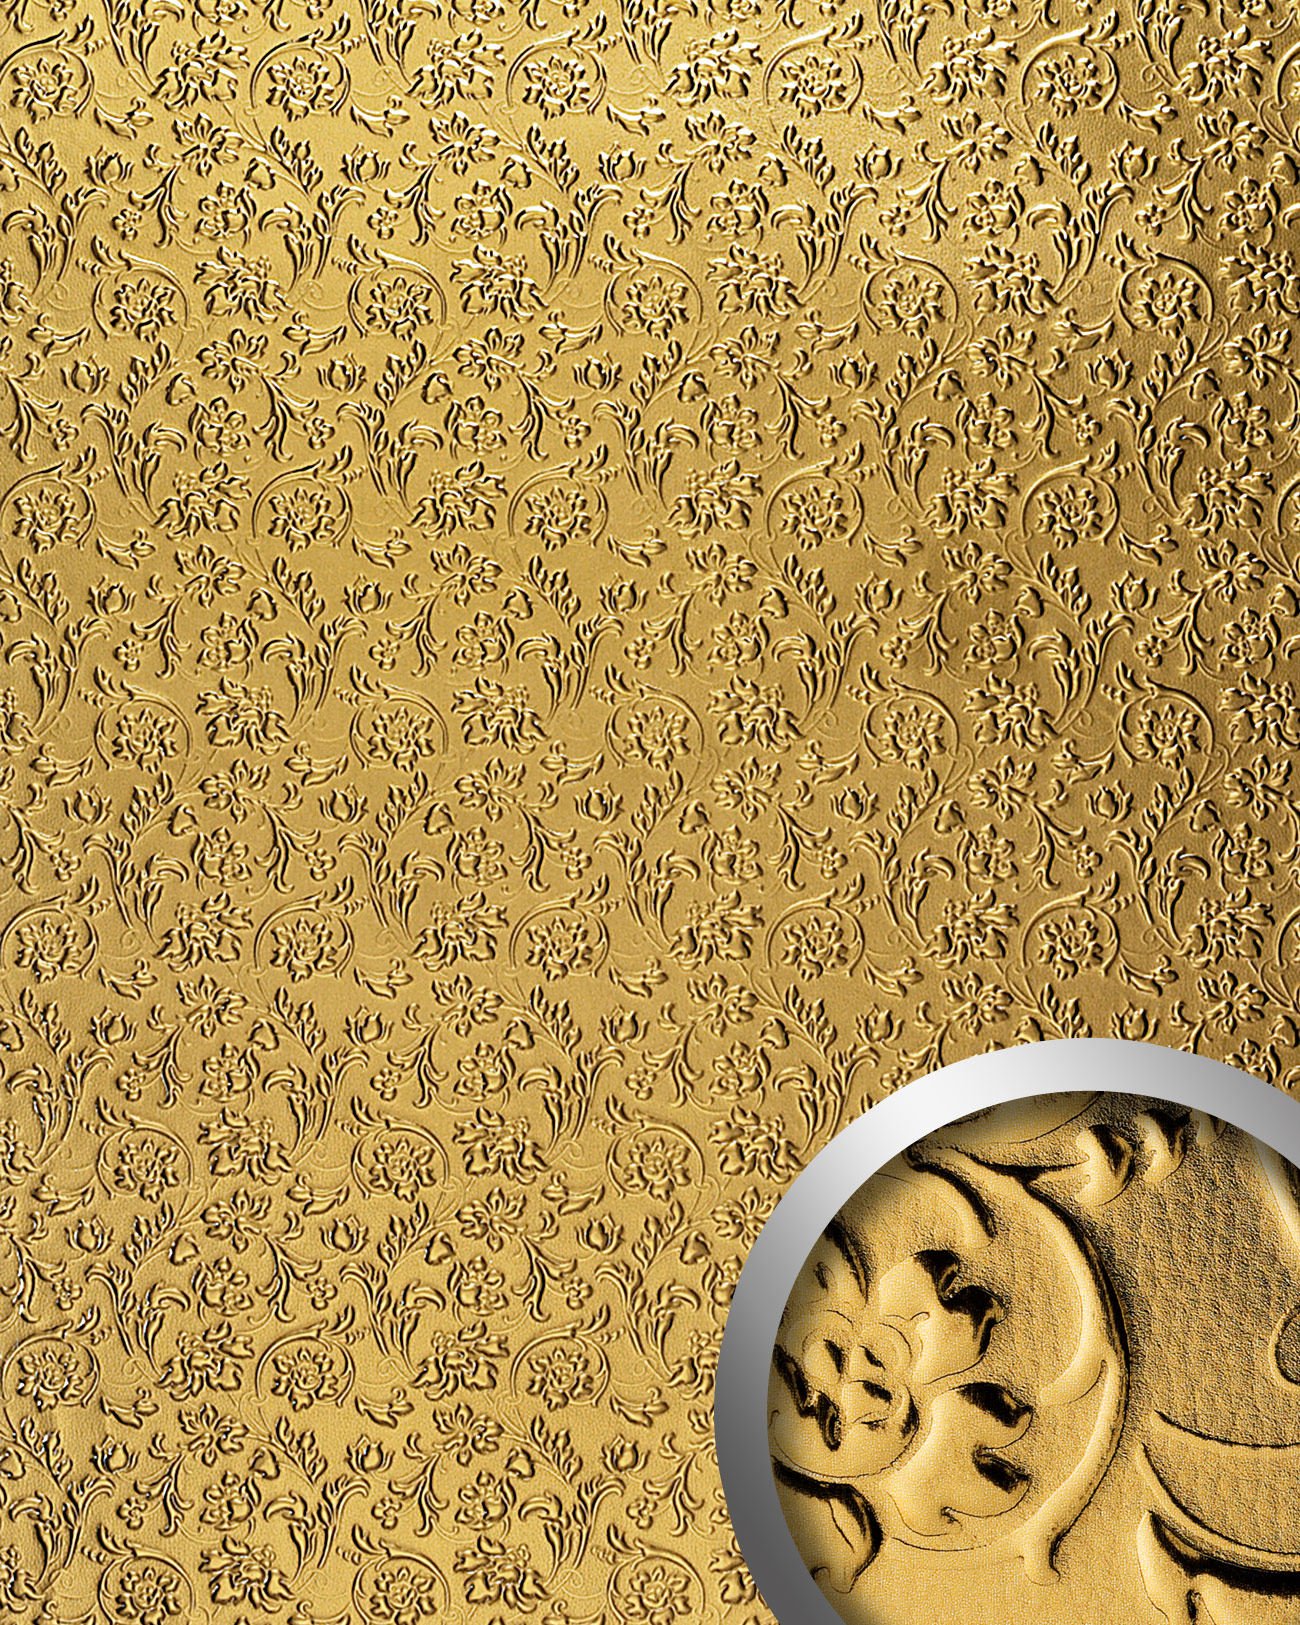 Wallface 14267 Floral Wall Panel Leather Baroque Flower Interior Decor Wallcovering Self Adhesive Gold 2 60 Sqm Wallface Shop